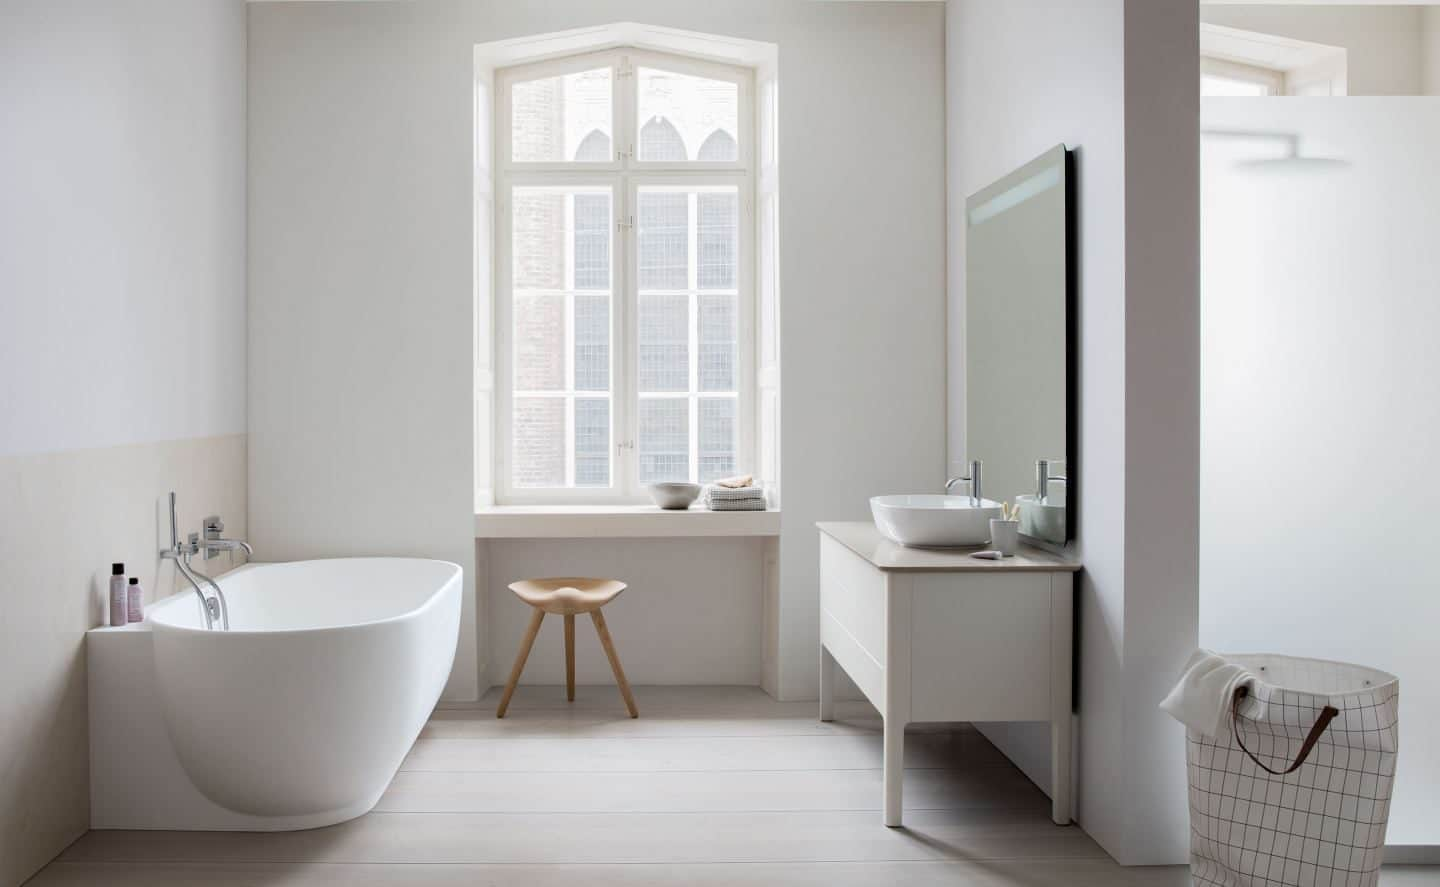 Luv collection designed by Cecile Manz for Luxury bathroom brand Duravit